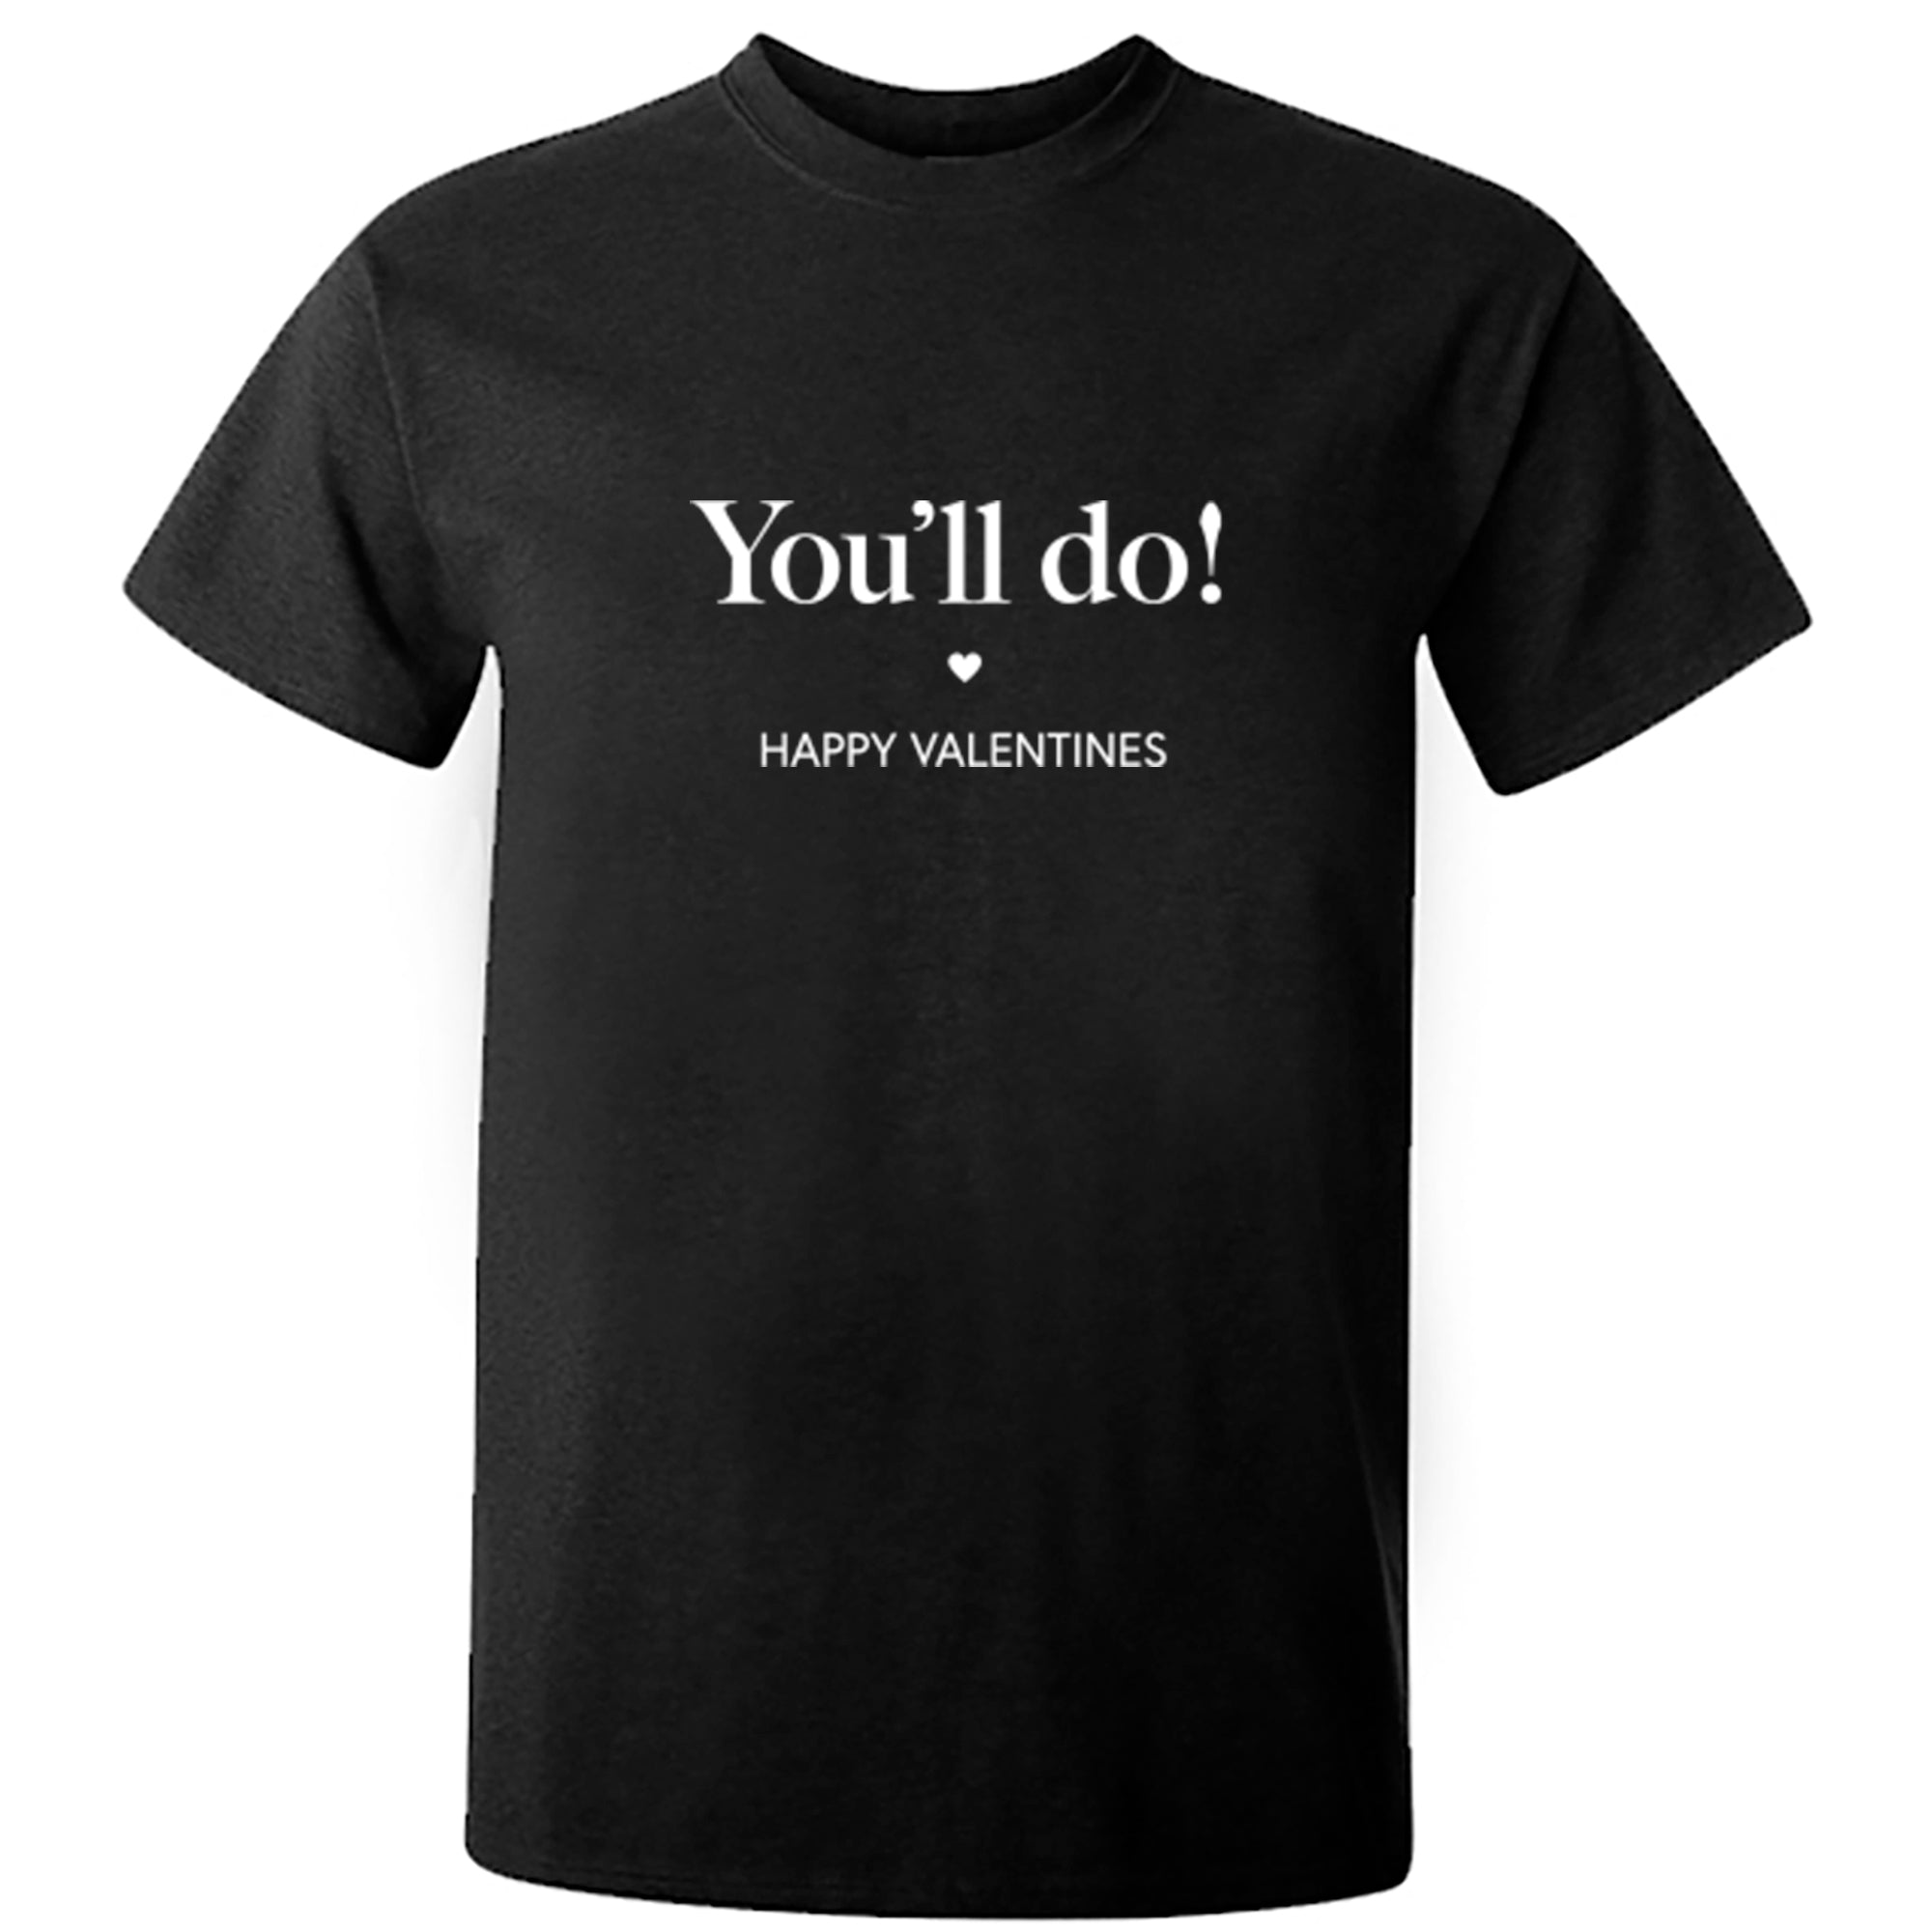 You'll Do! Unisex Fit T-Shirt A0060 - Illustrated Identity Ltd.